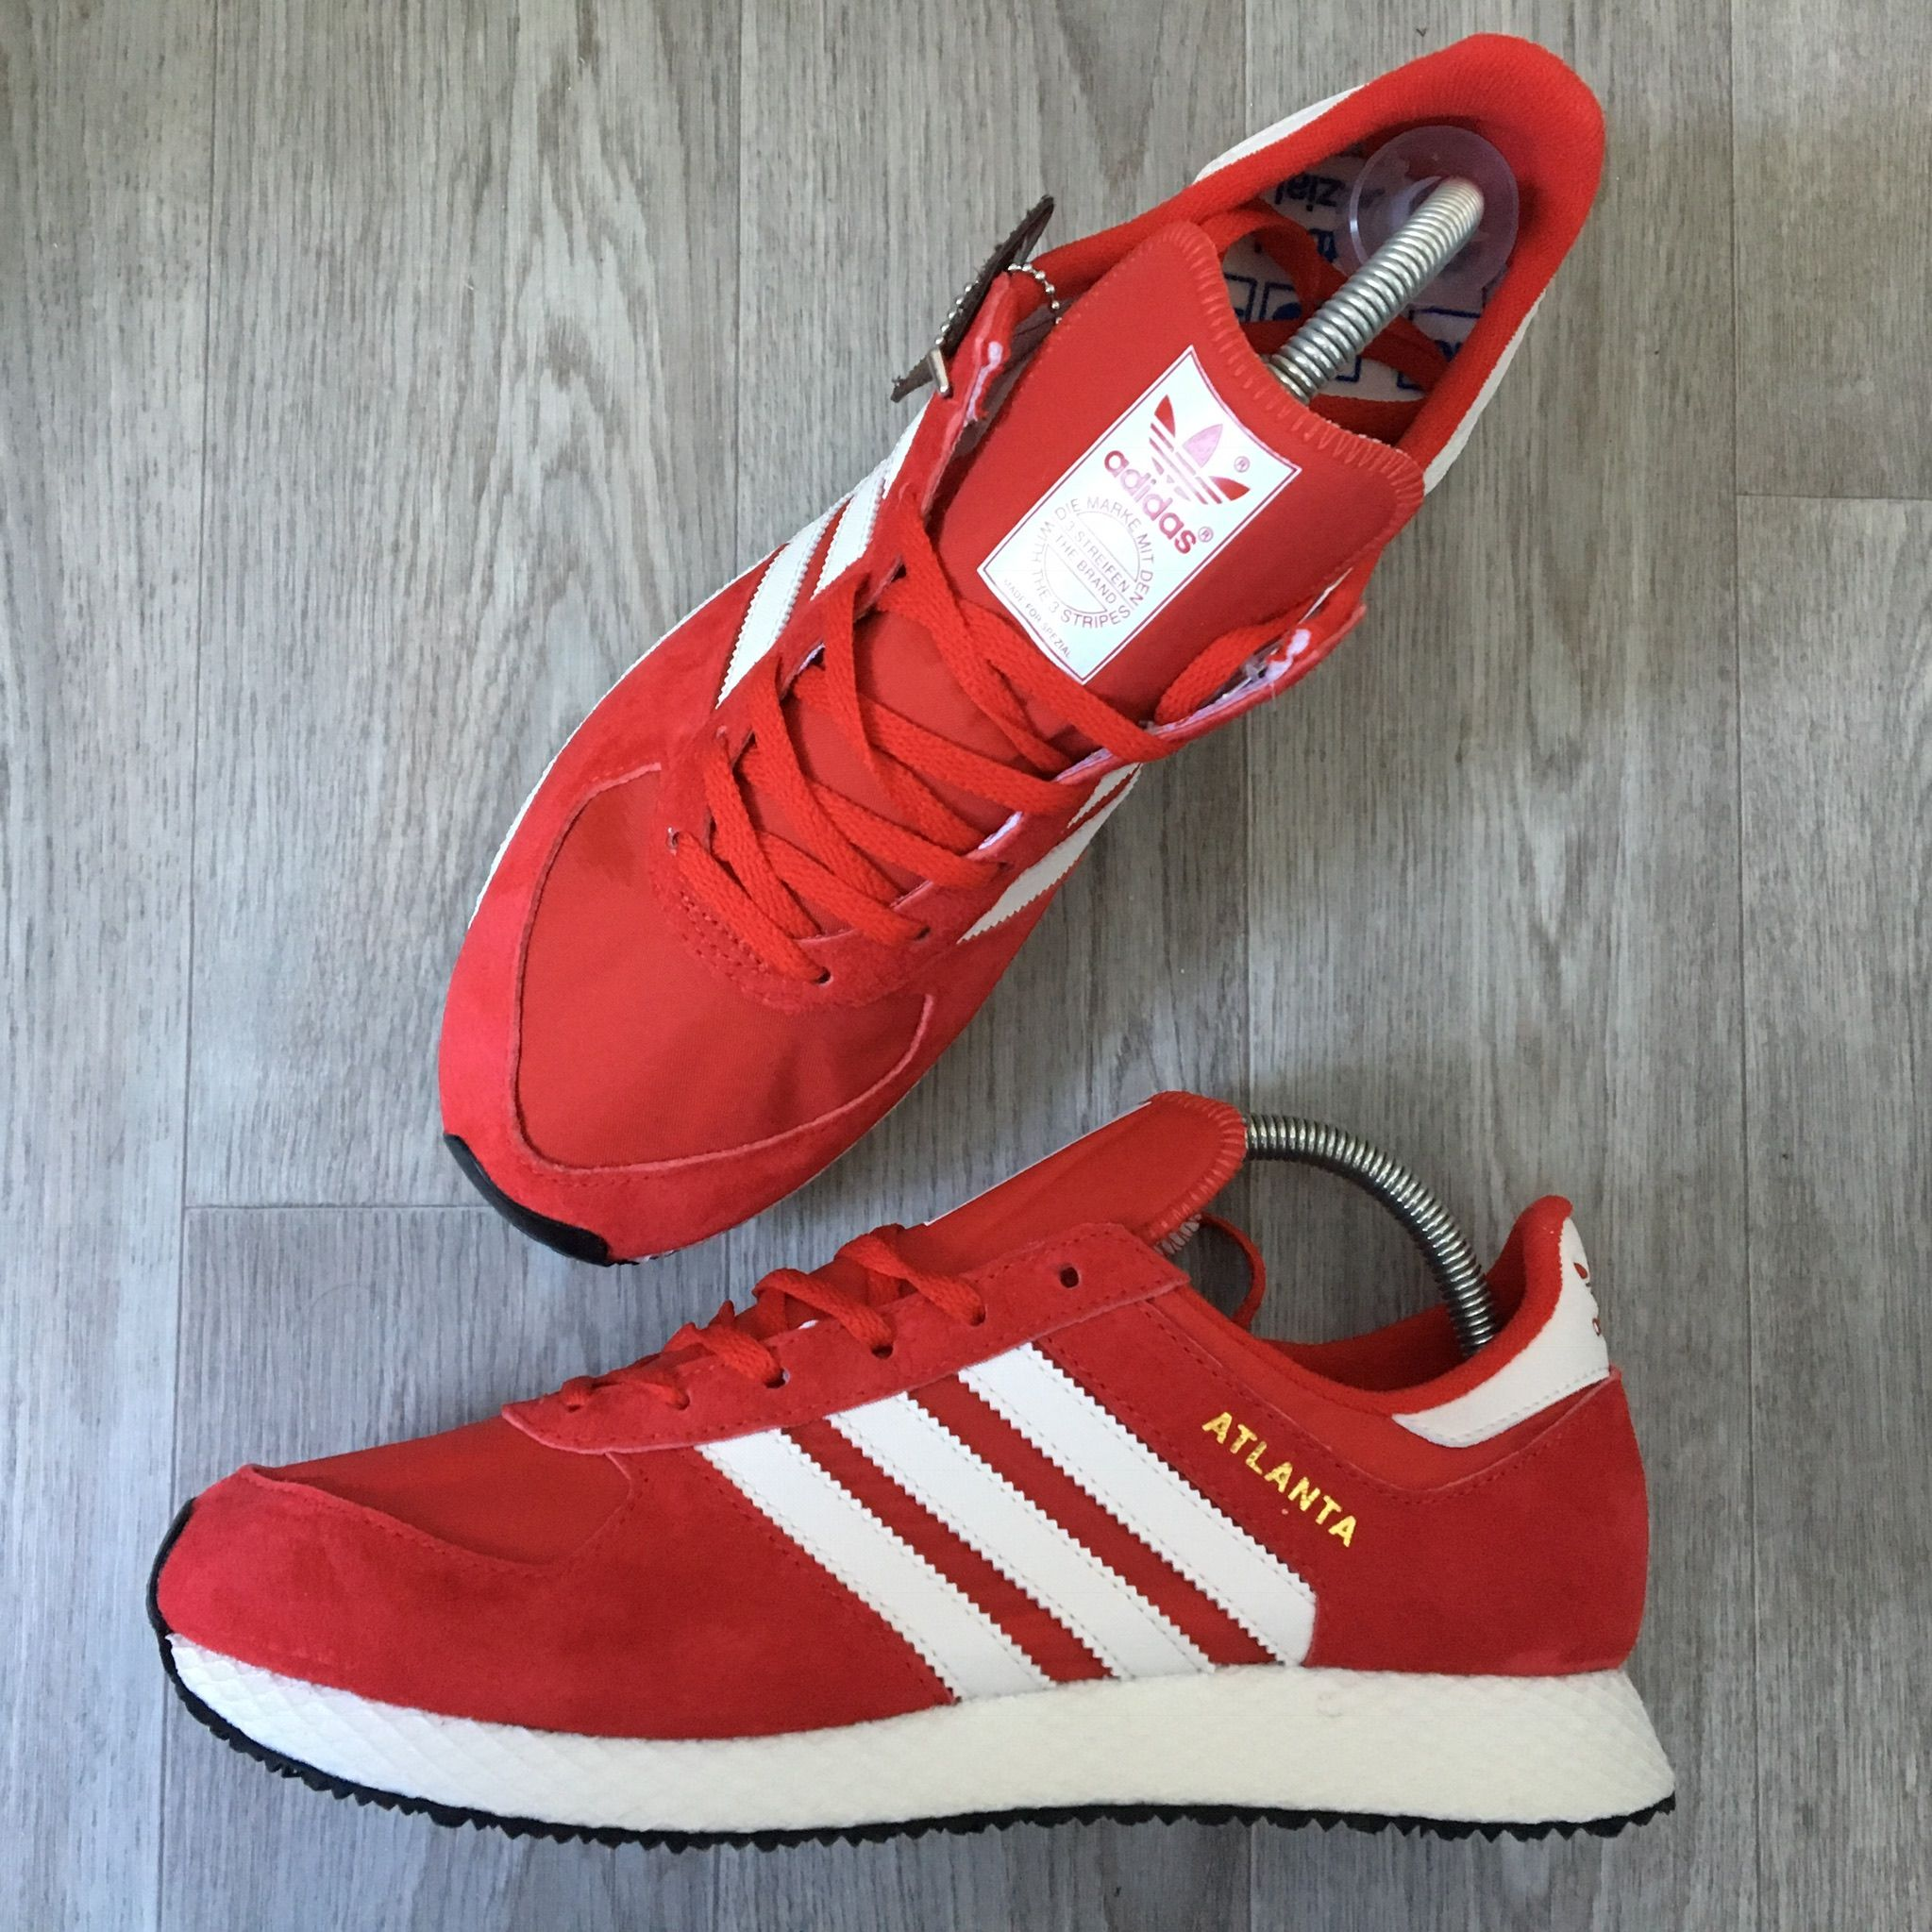 online store d86e1 be61c Adidas Atlanta SPZL. Article BY1880. Year 1216. Made in Vietnam.